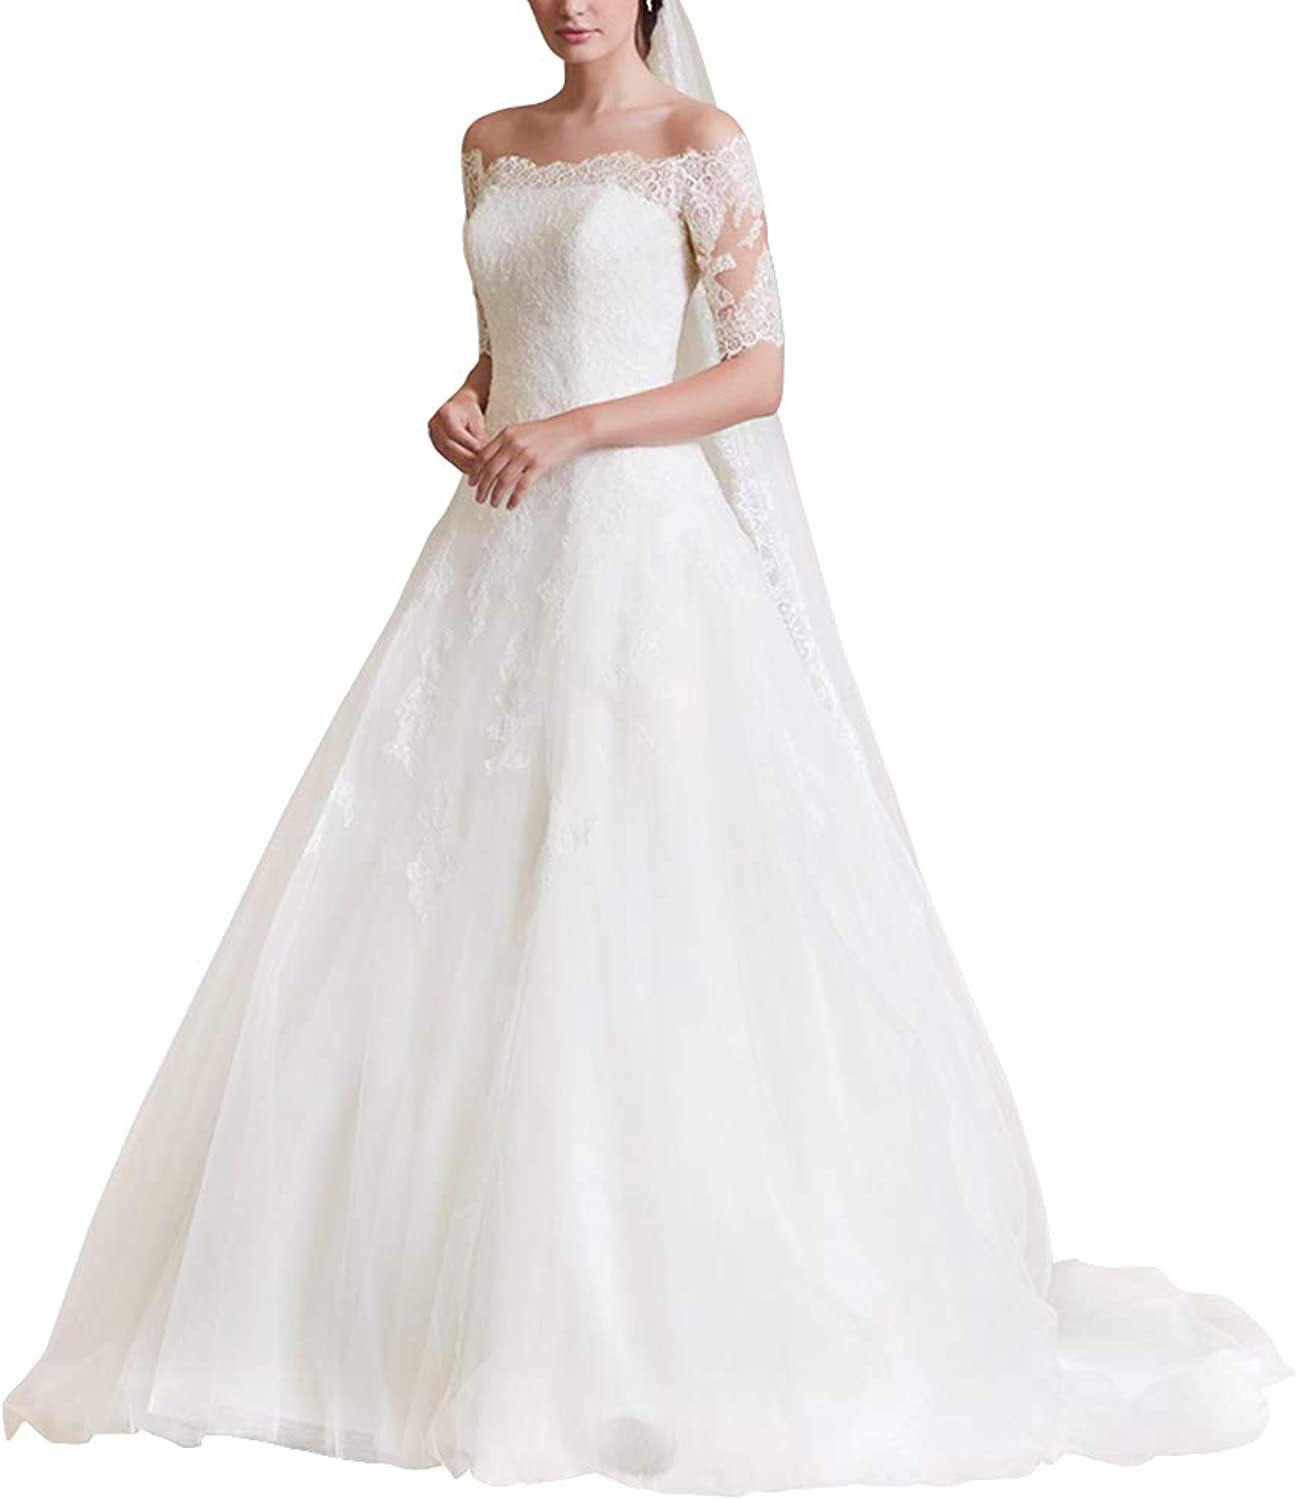 Cdress Lace Appliques Wedding Dresses Tulle Long Bridal Gowns Boat Neck Sweep Train for Bride